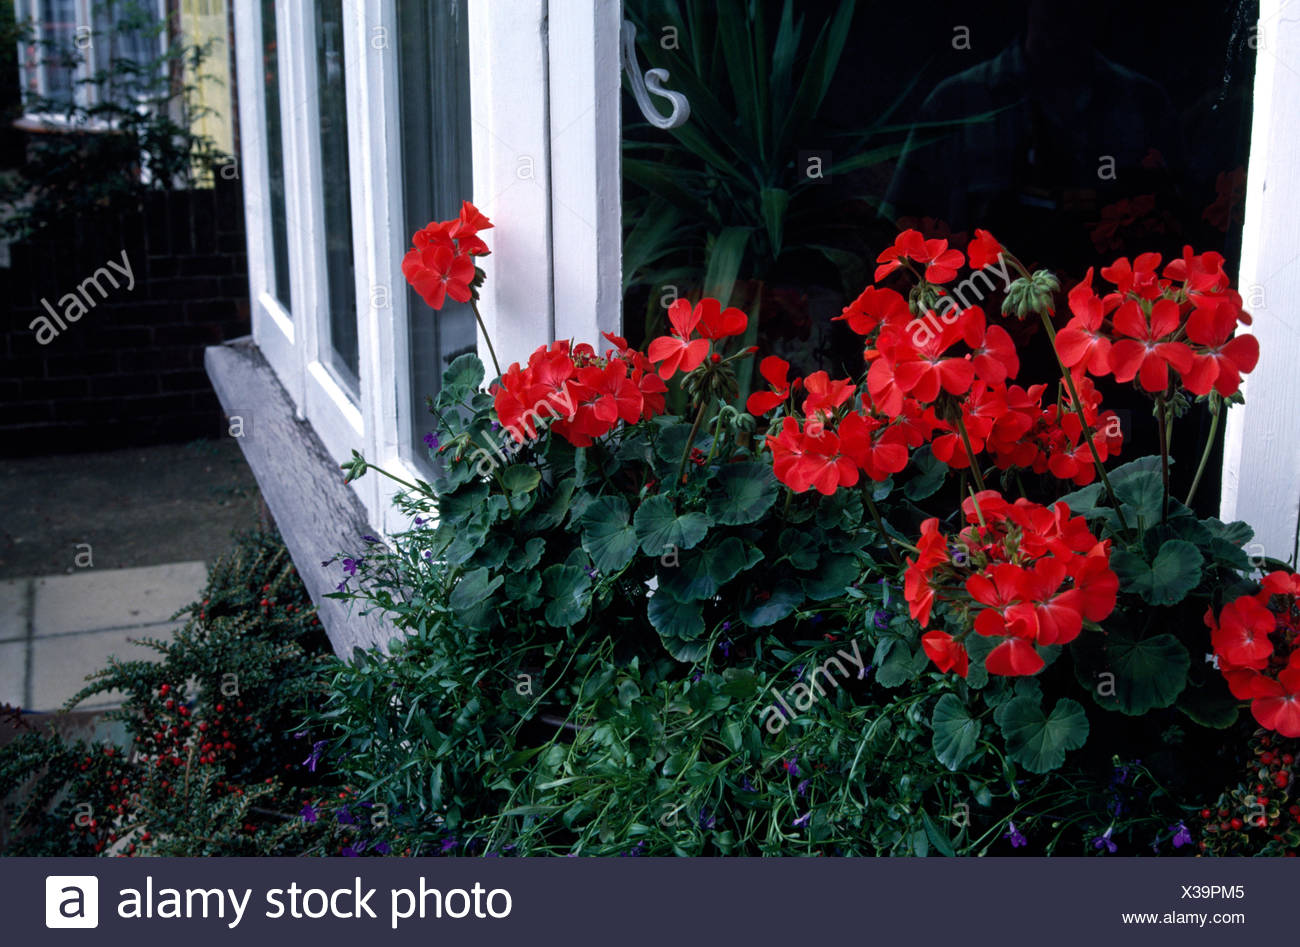 Close-up of red geraniums in a window box - Stock Image